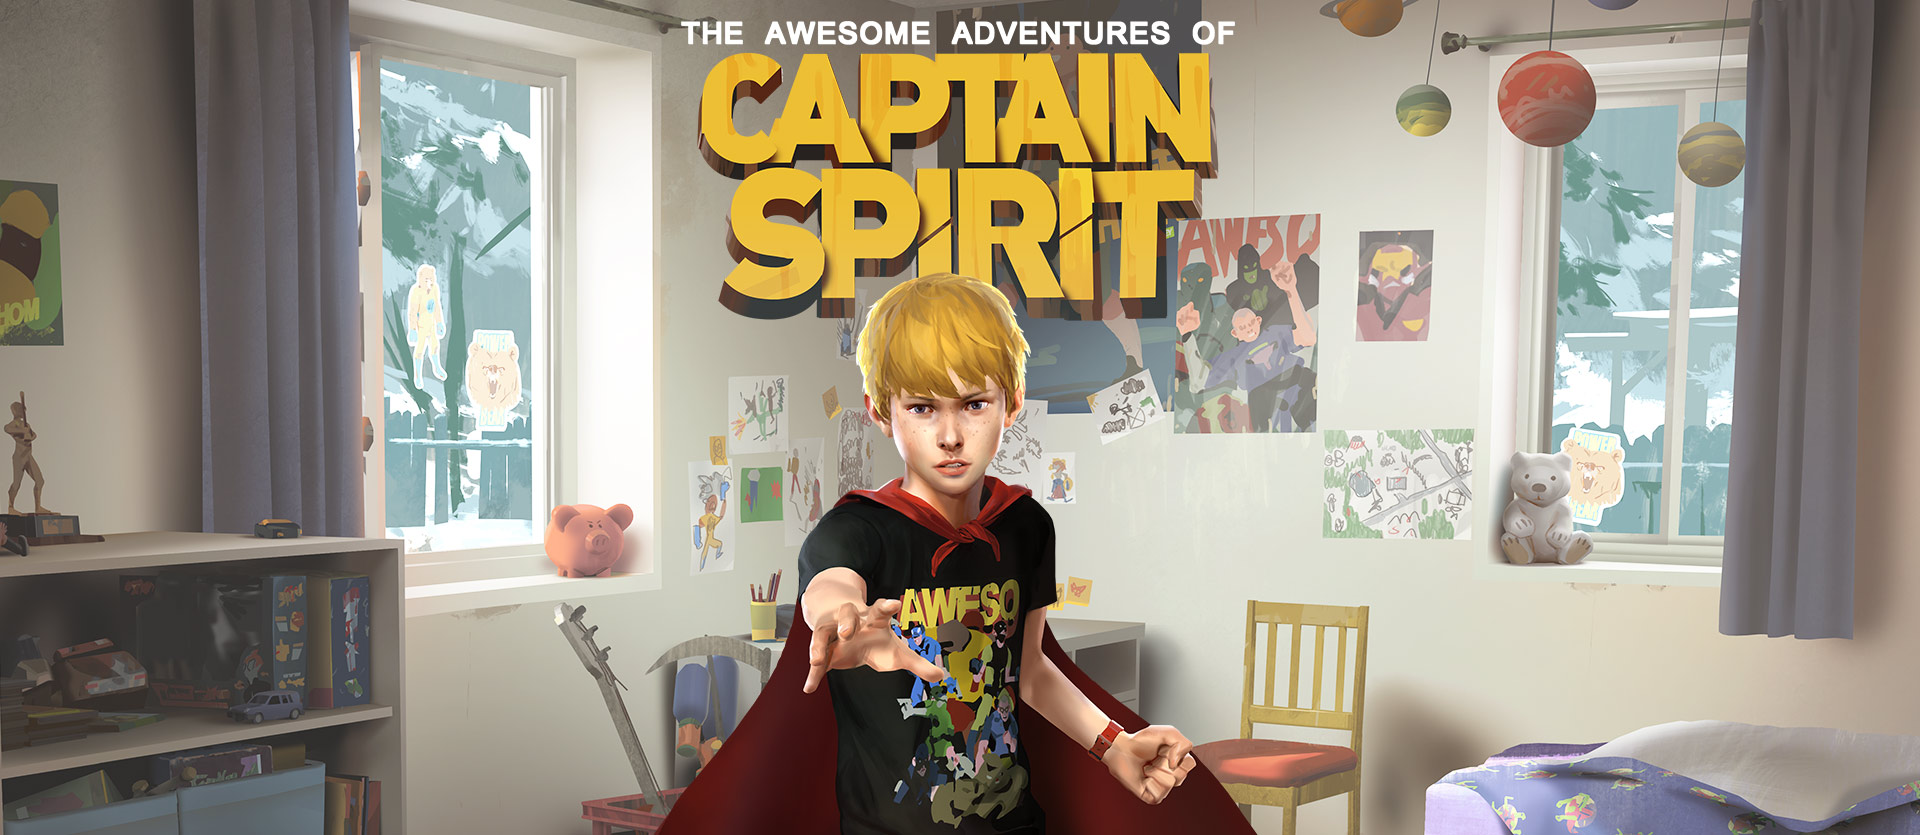 The Awesome Adventures of Captain Spirit, 9-year-old Chris stands in his room dressed as his altar ego Captain Spirit